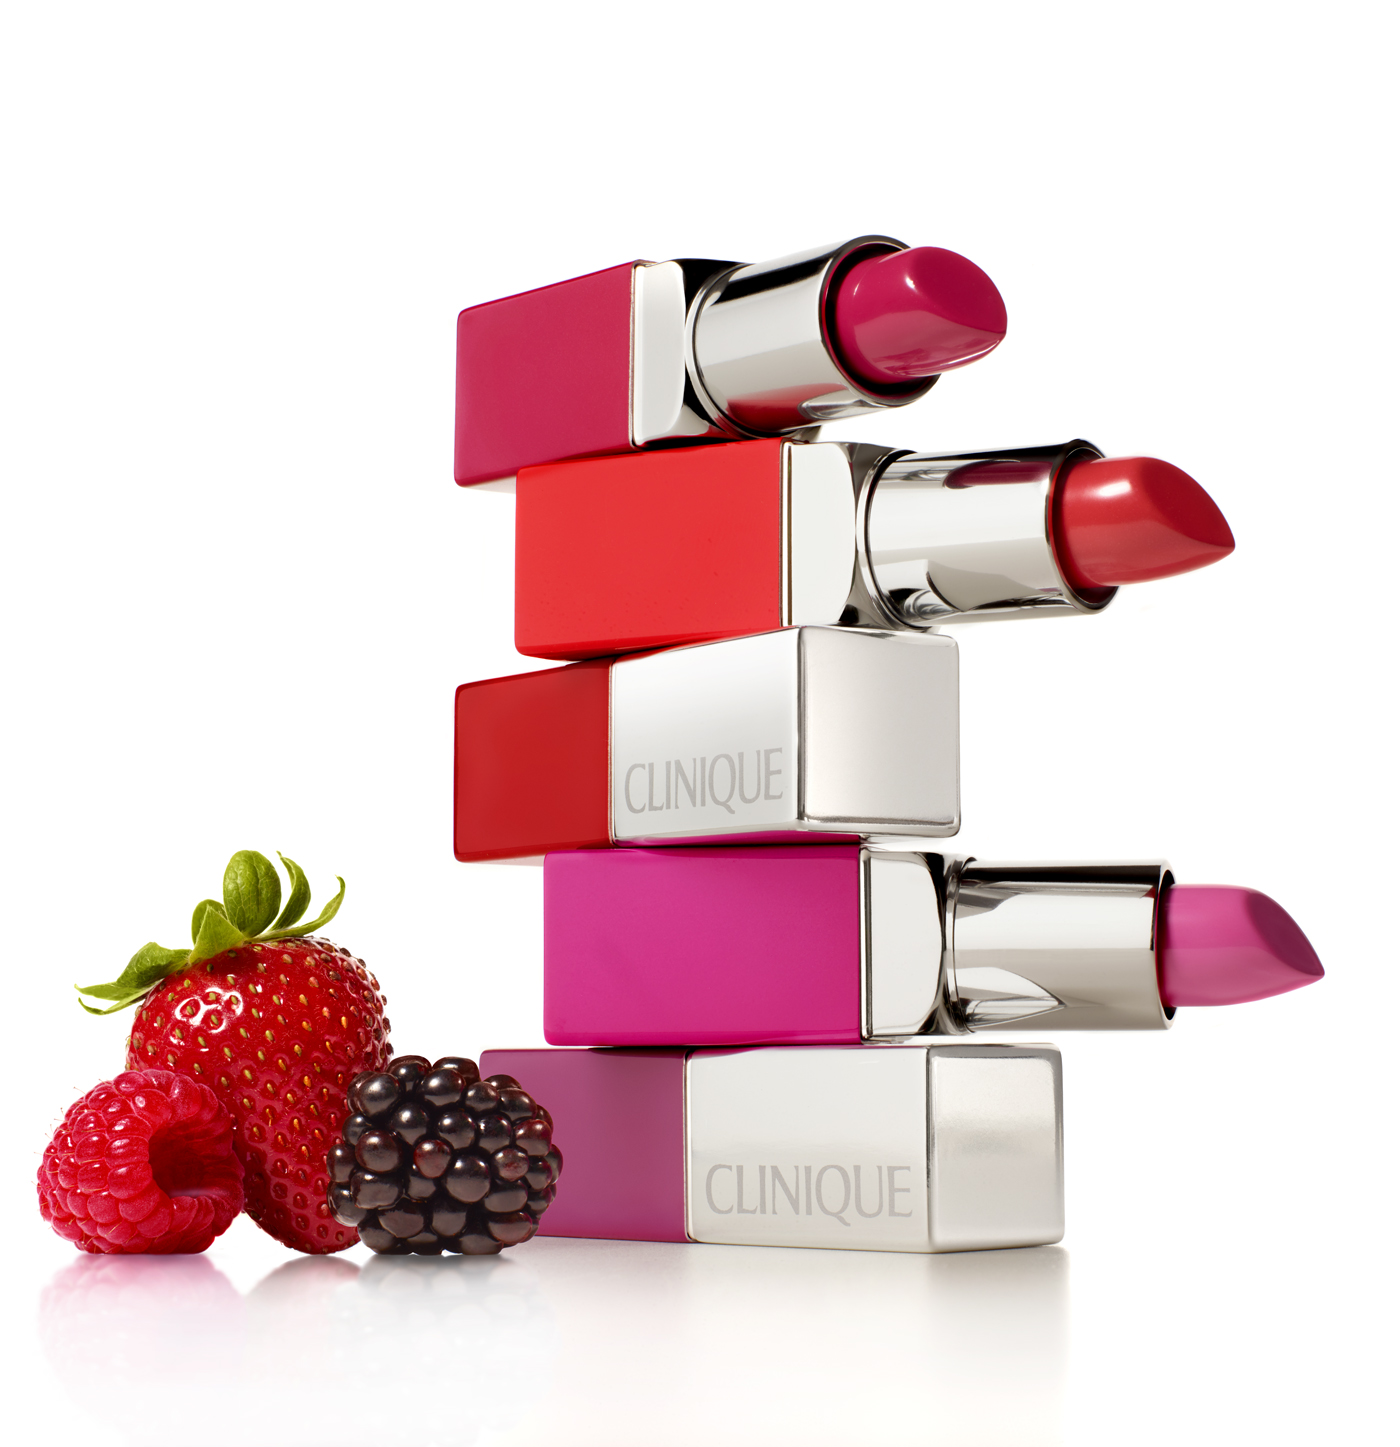 Clinique lipsticks w berries copy